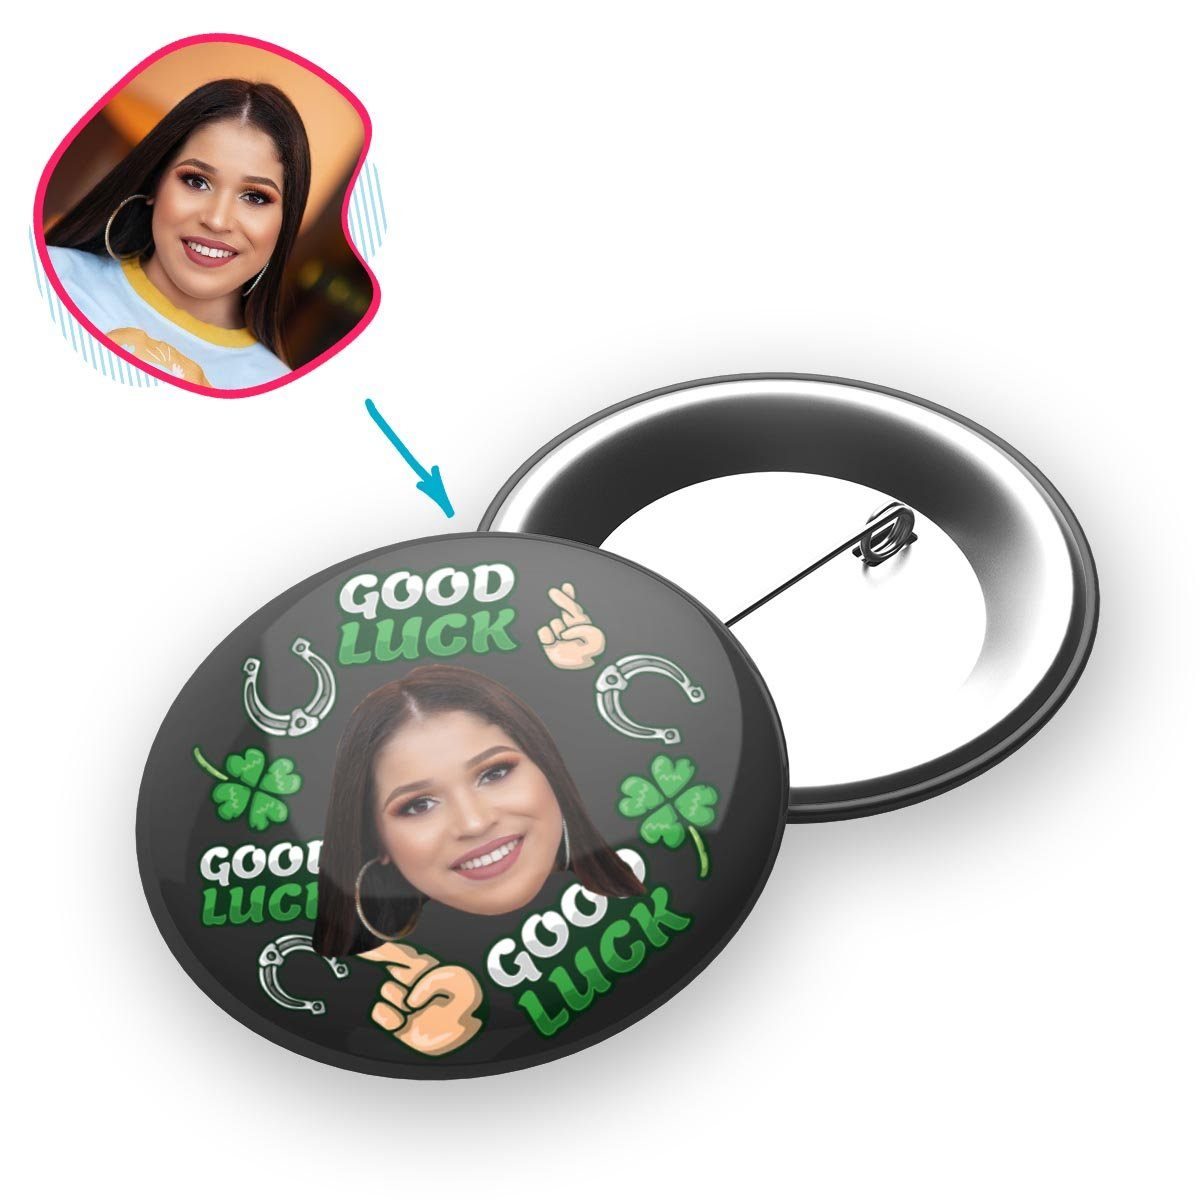 Dark Good Luck personalized pin with photo of face printed on it